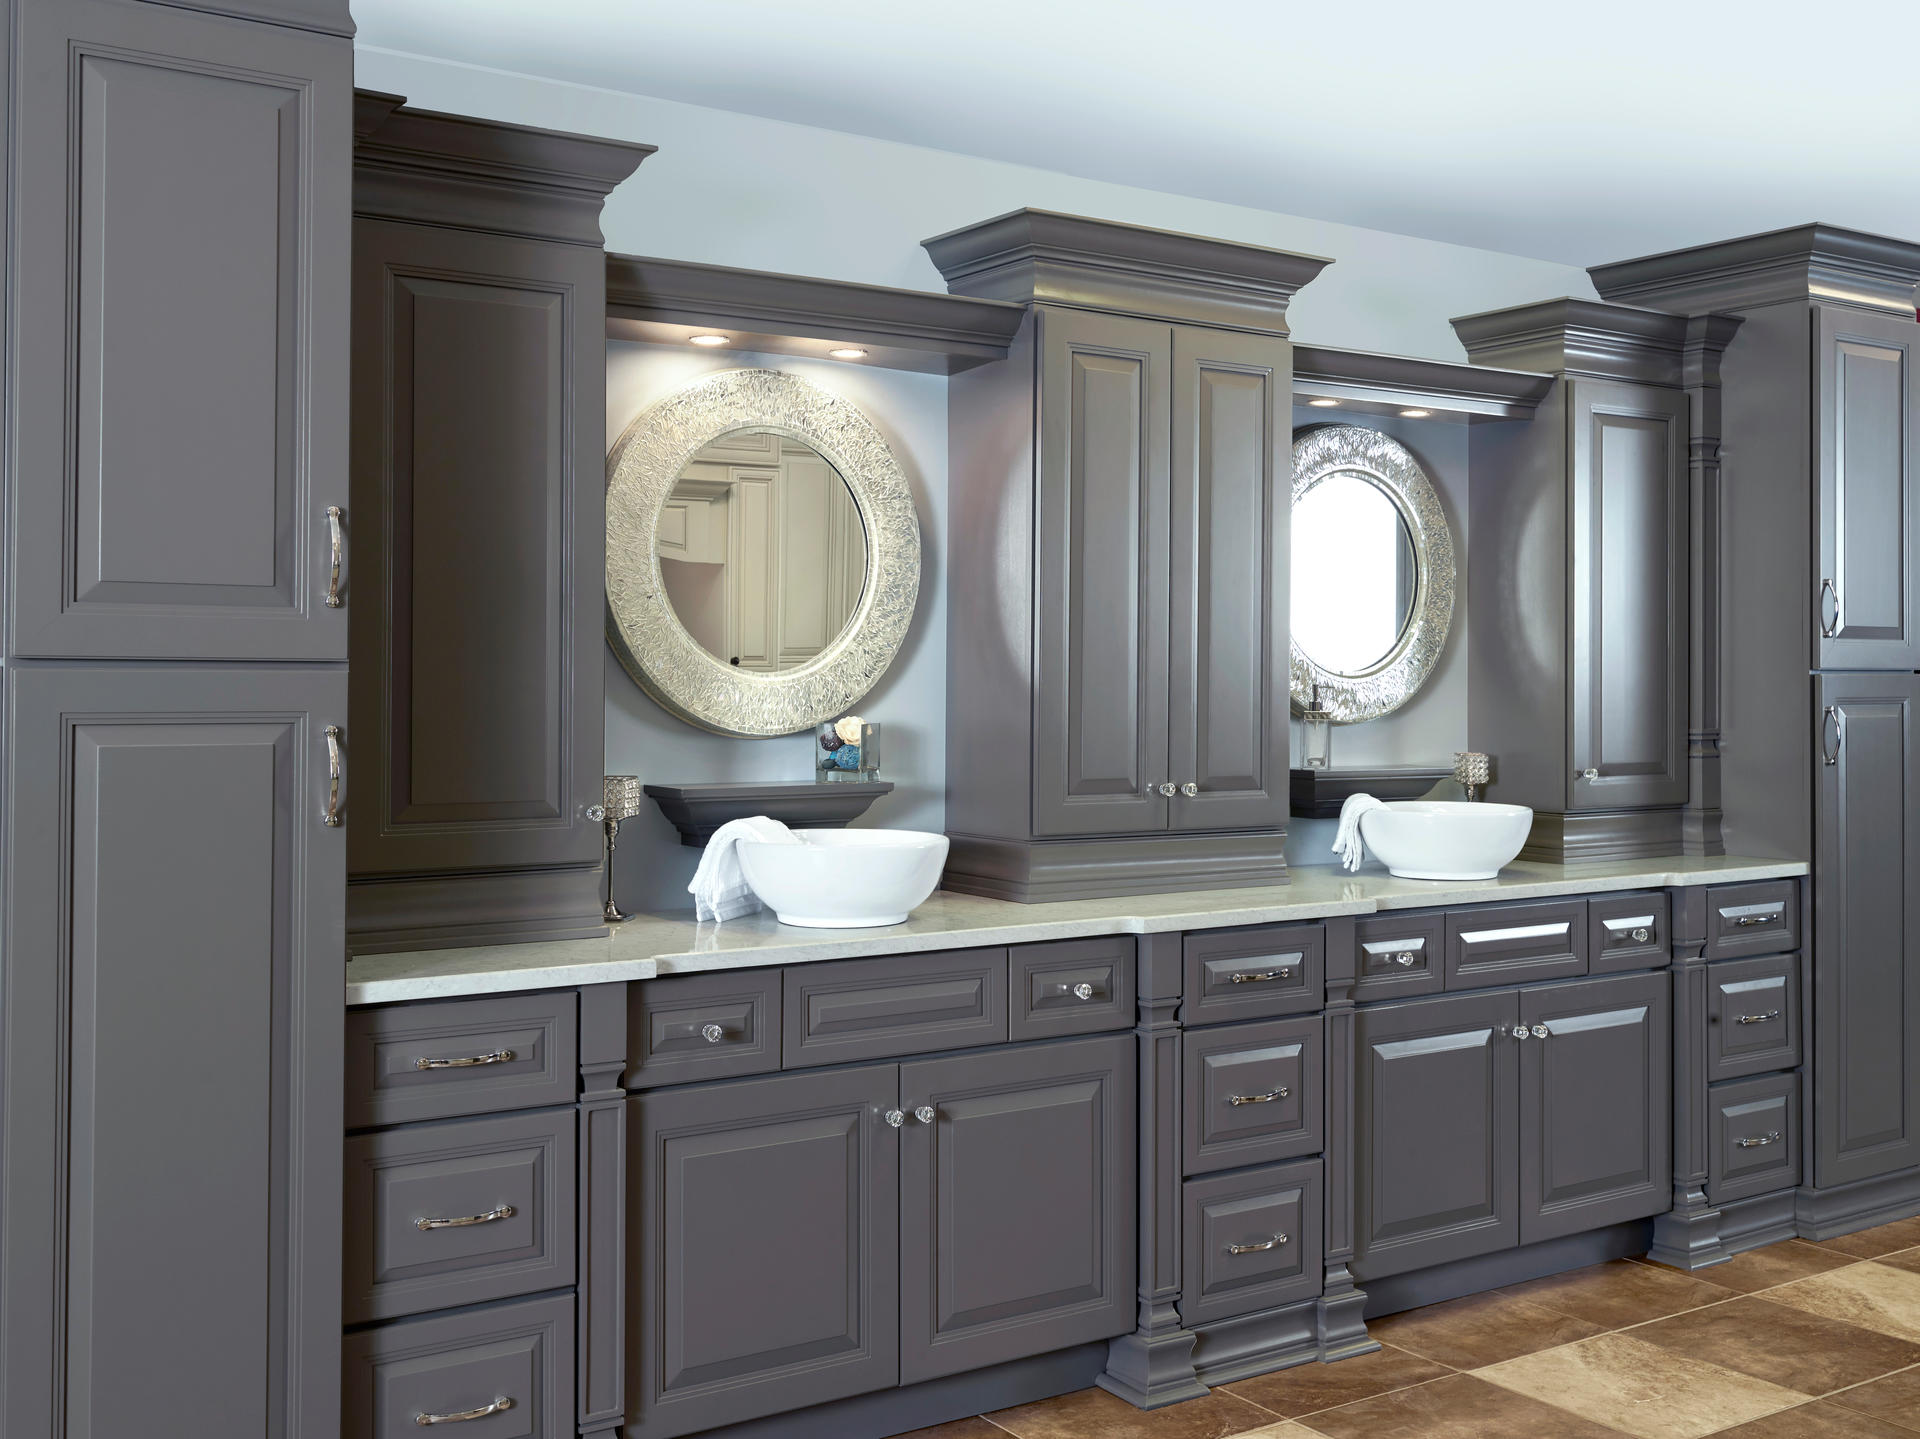 US Stone Outlet Cabinets & Countertops of New Orleans image 2